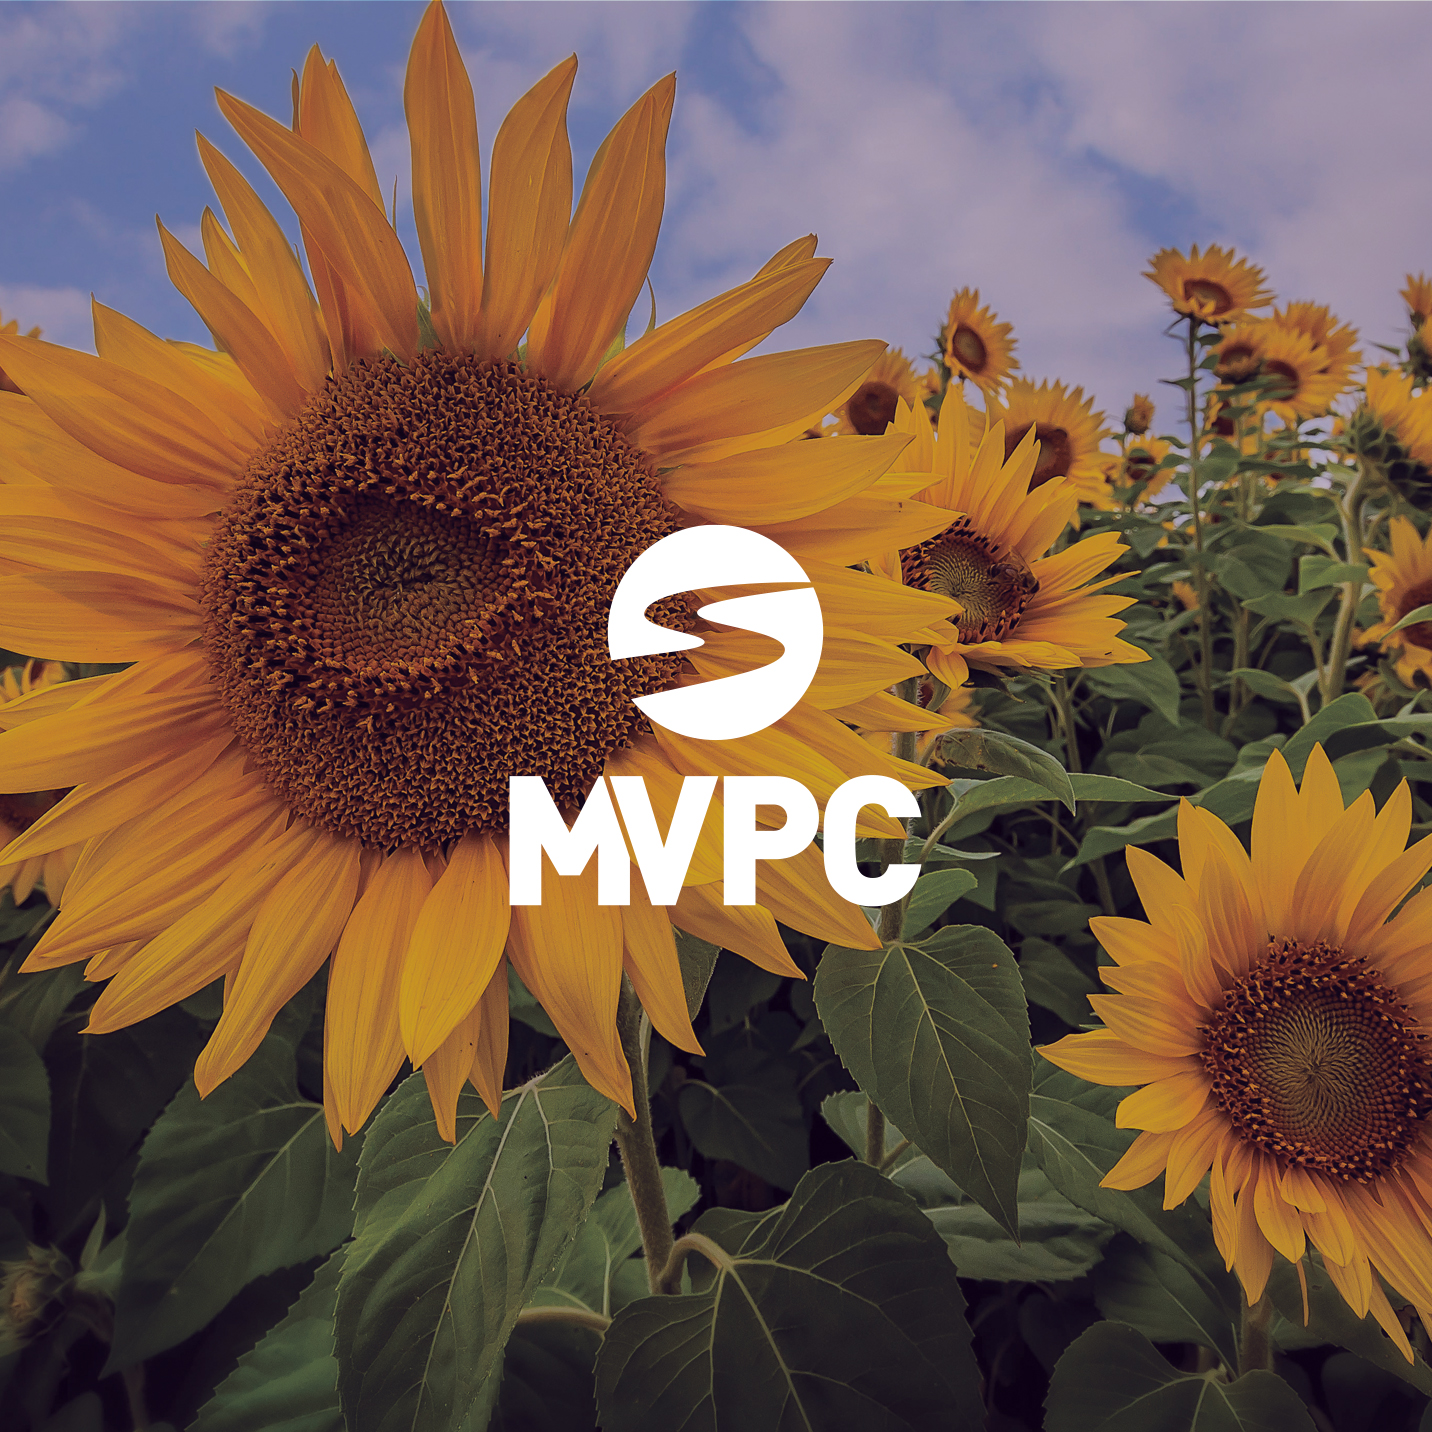 MVPC Logo with Sunflowers